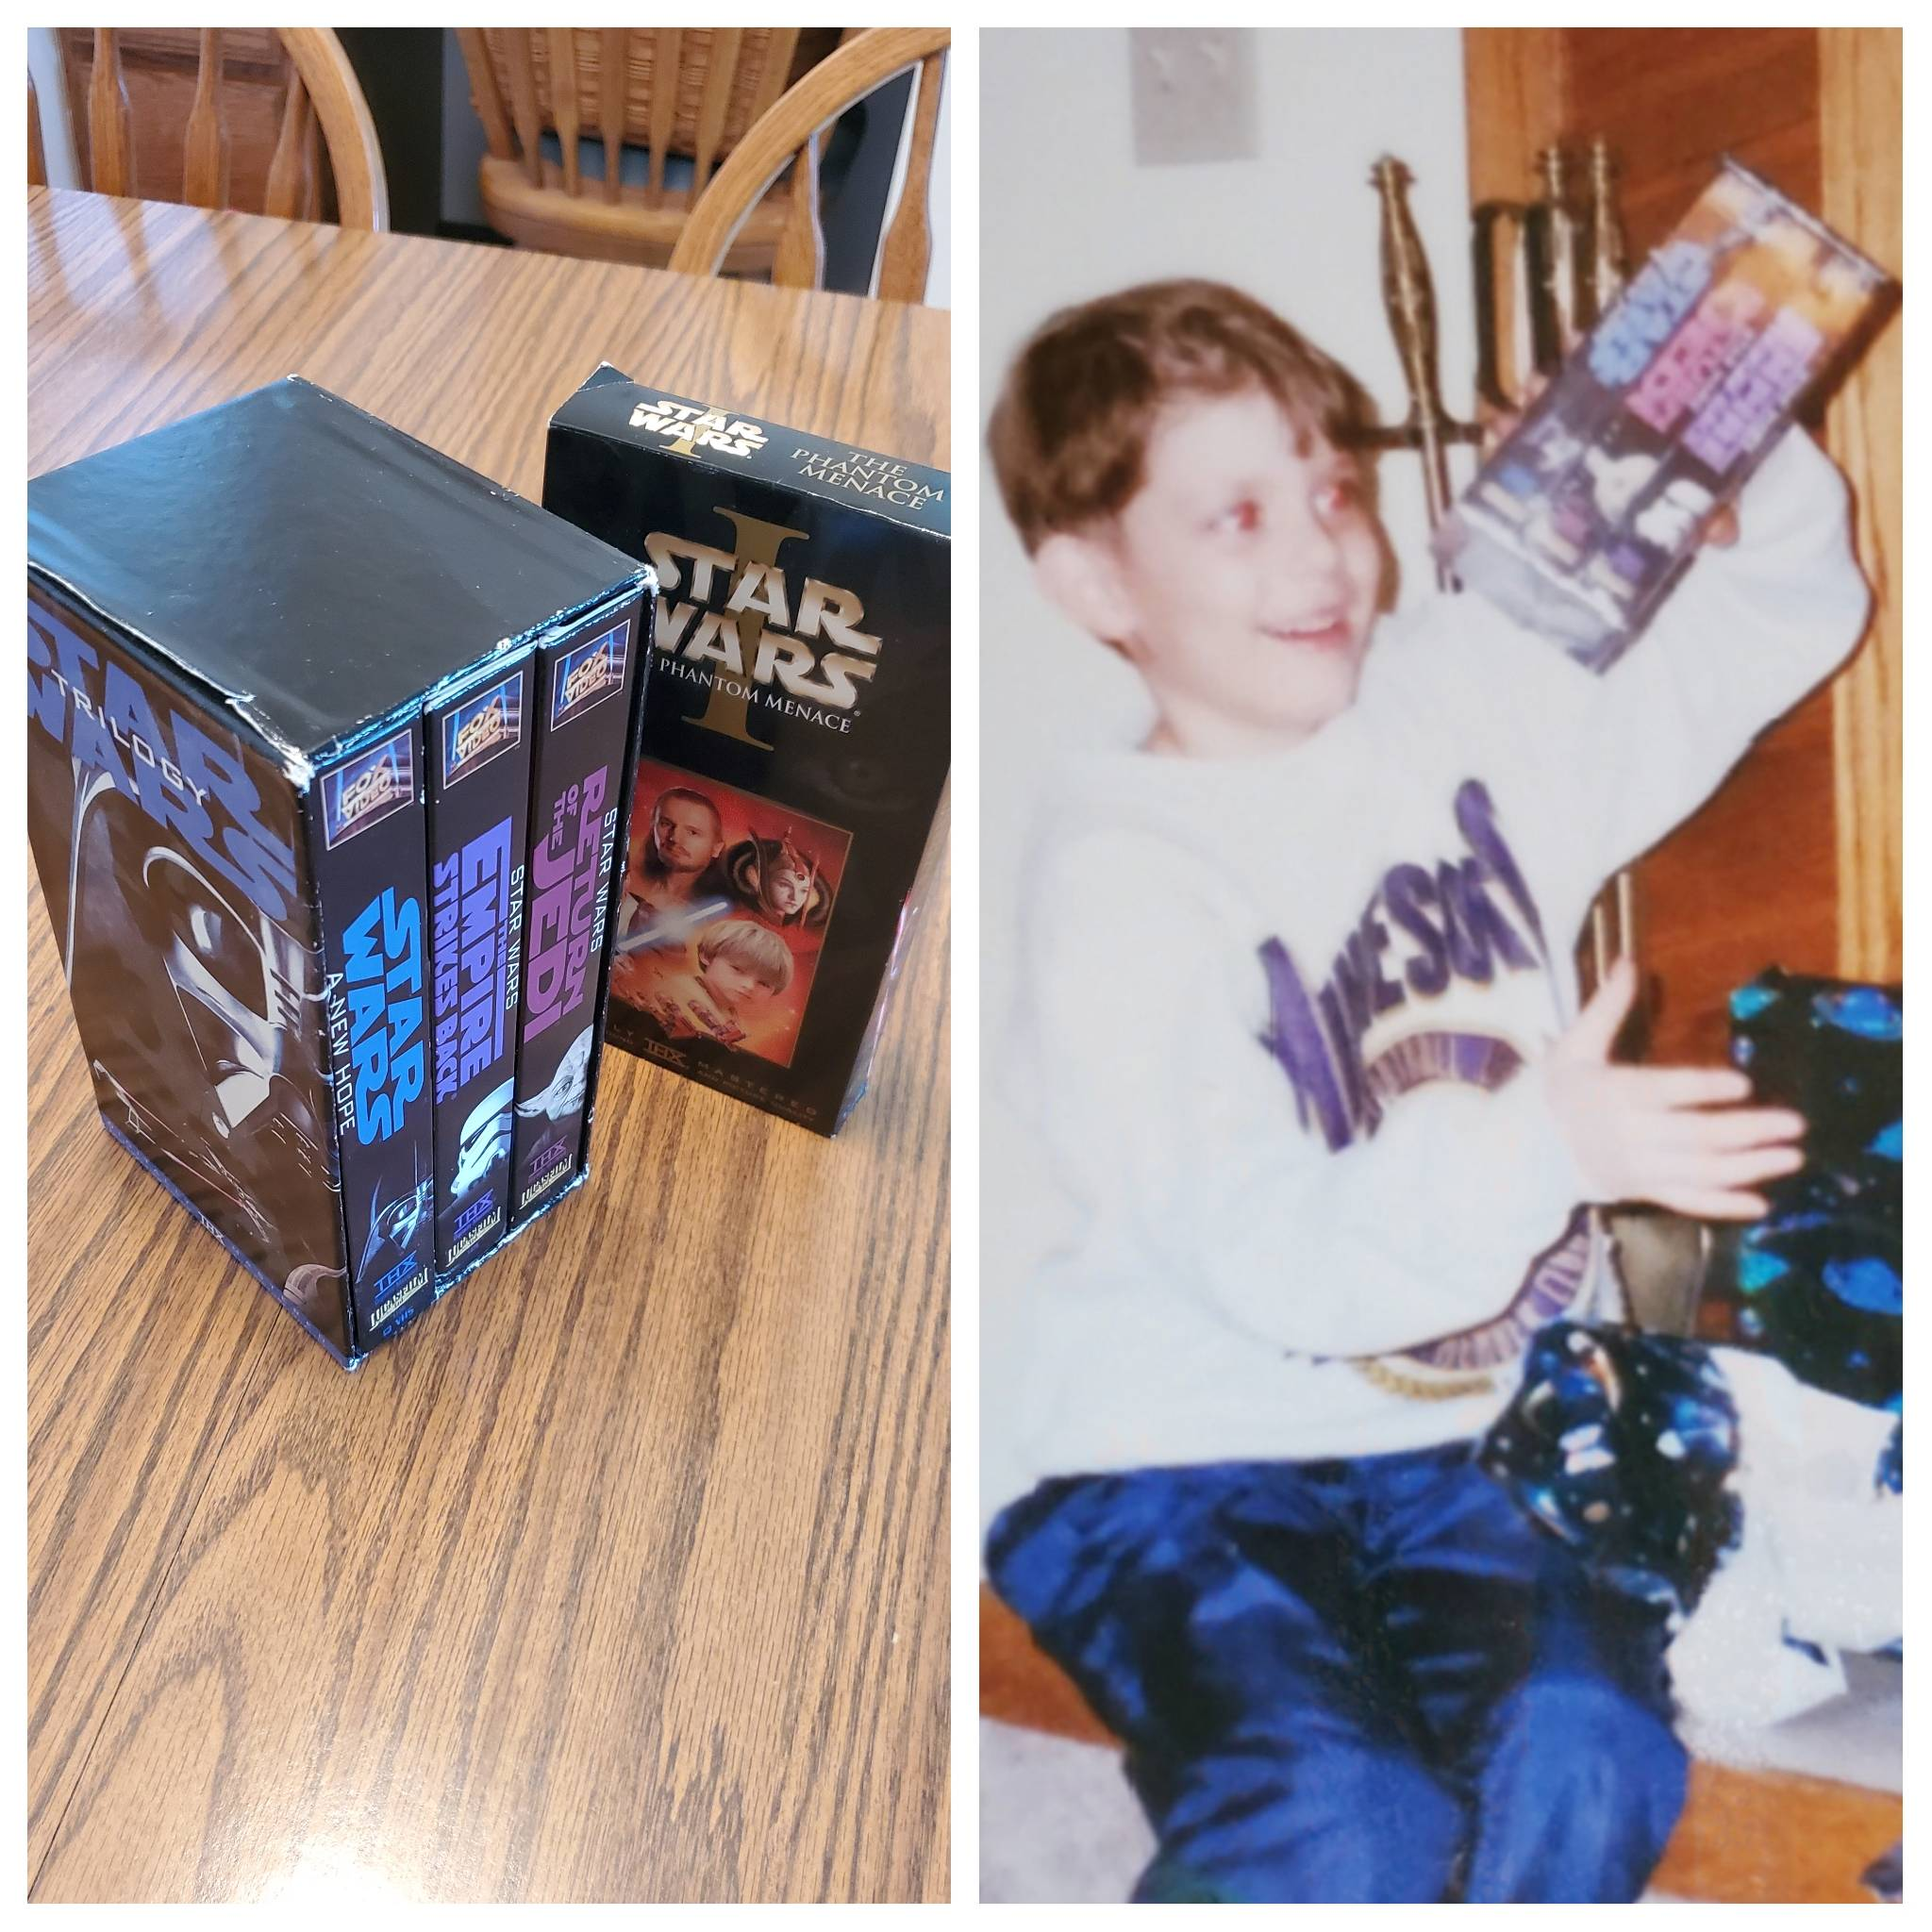 I was back home and going through old photo albums, found this pic of me getting the OT on VHS for my 7th birthday! I al...